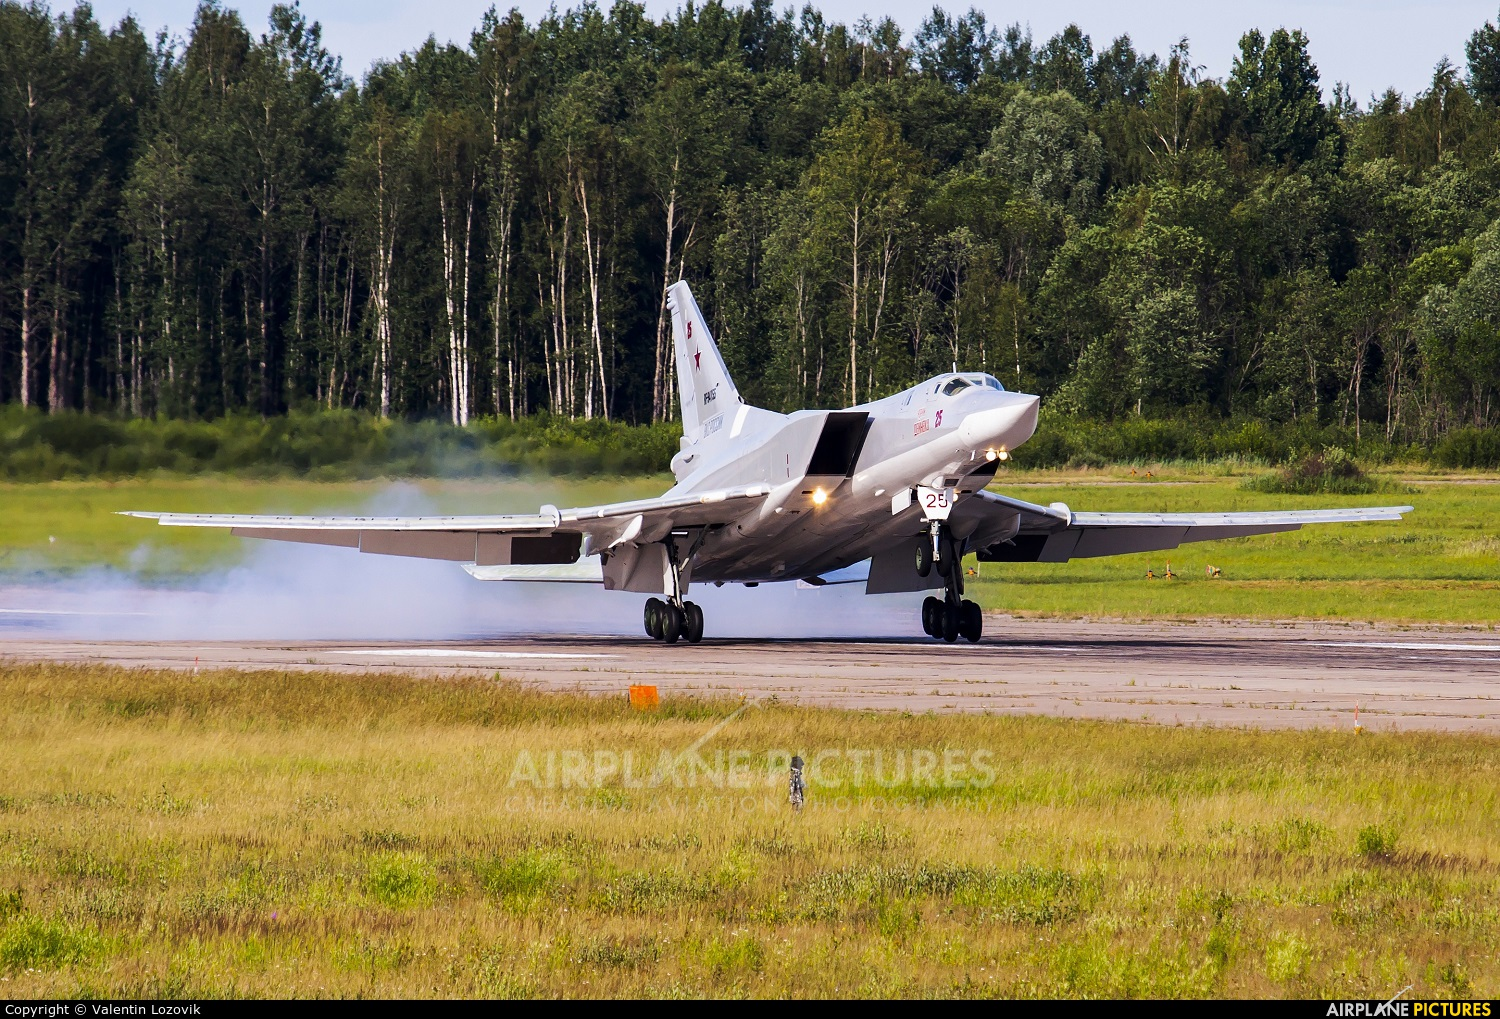 Russia - Air Force RF-94155 aircraft at Undisclosed location